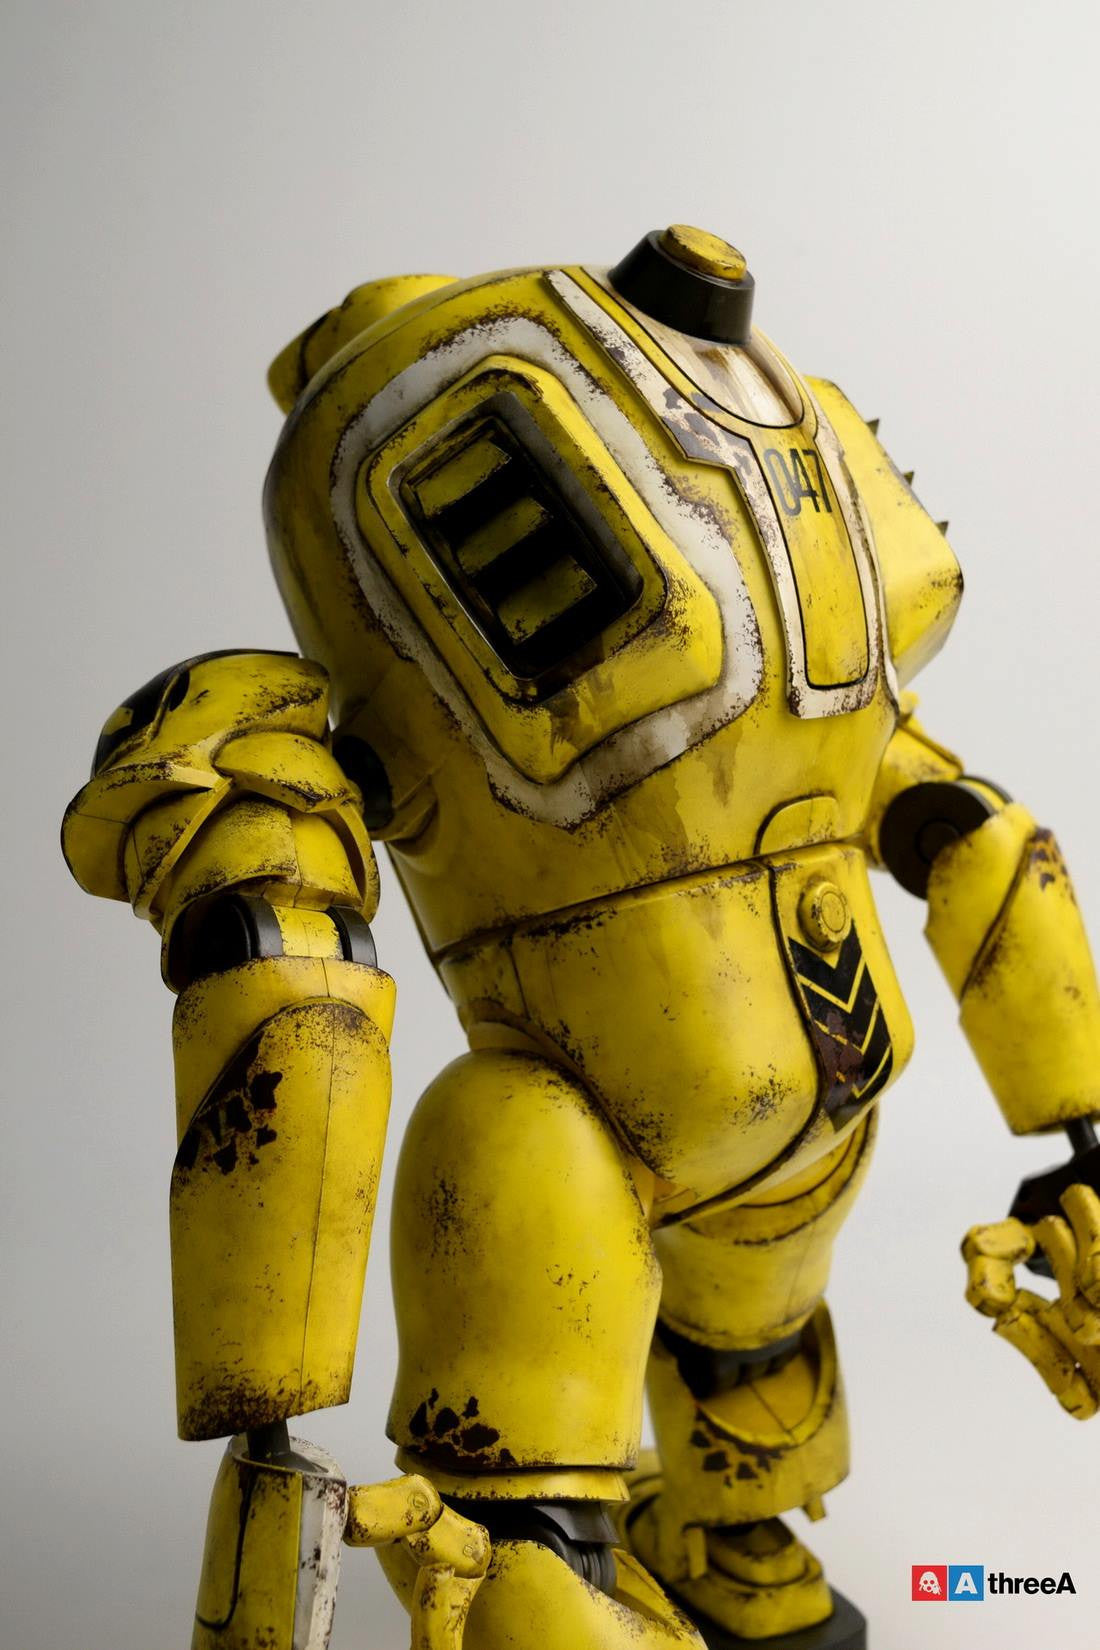 ThreeA - Evenfall - 1/6 T.O.T.E.M Thug Pugillo - K Striker-047 (Yellow) - Marvelous Toys - 10